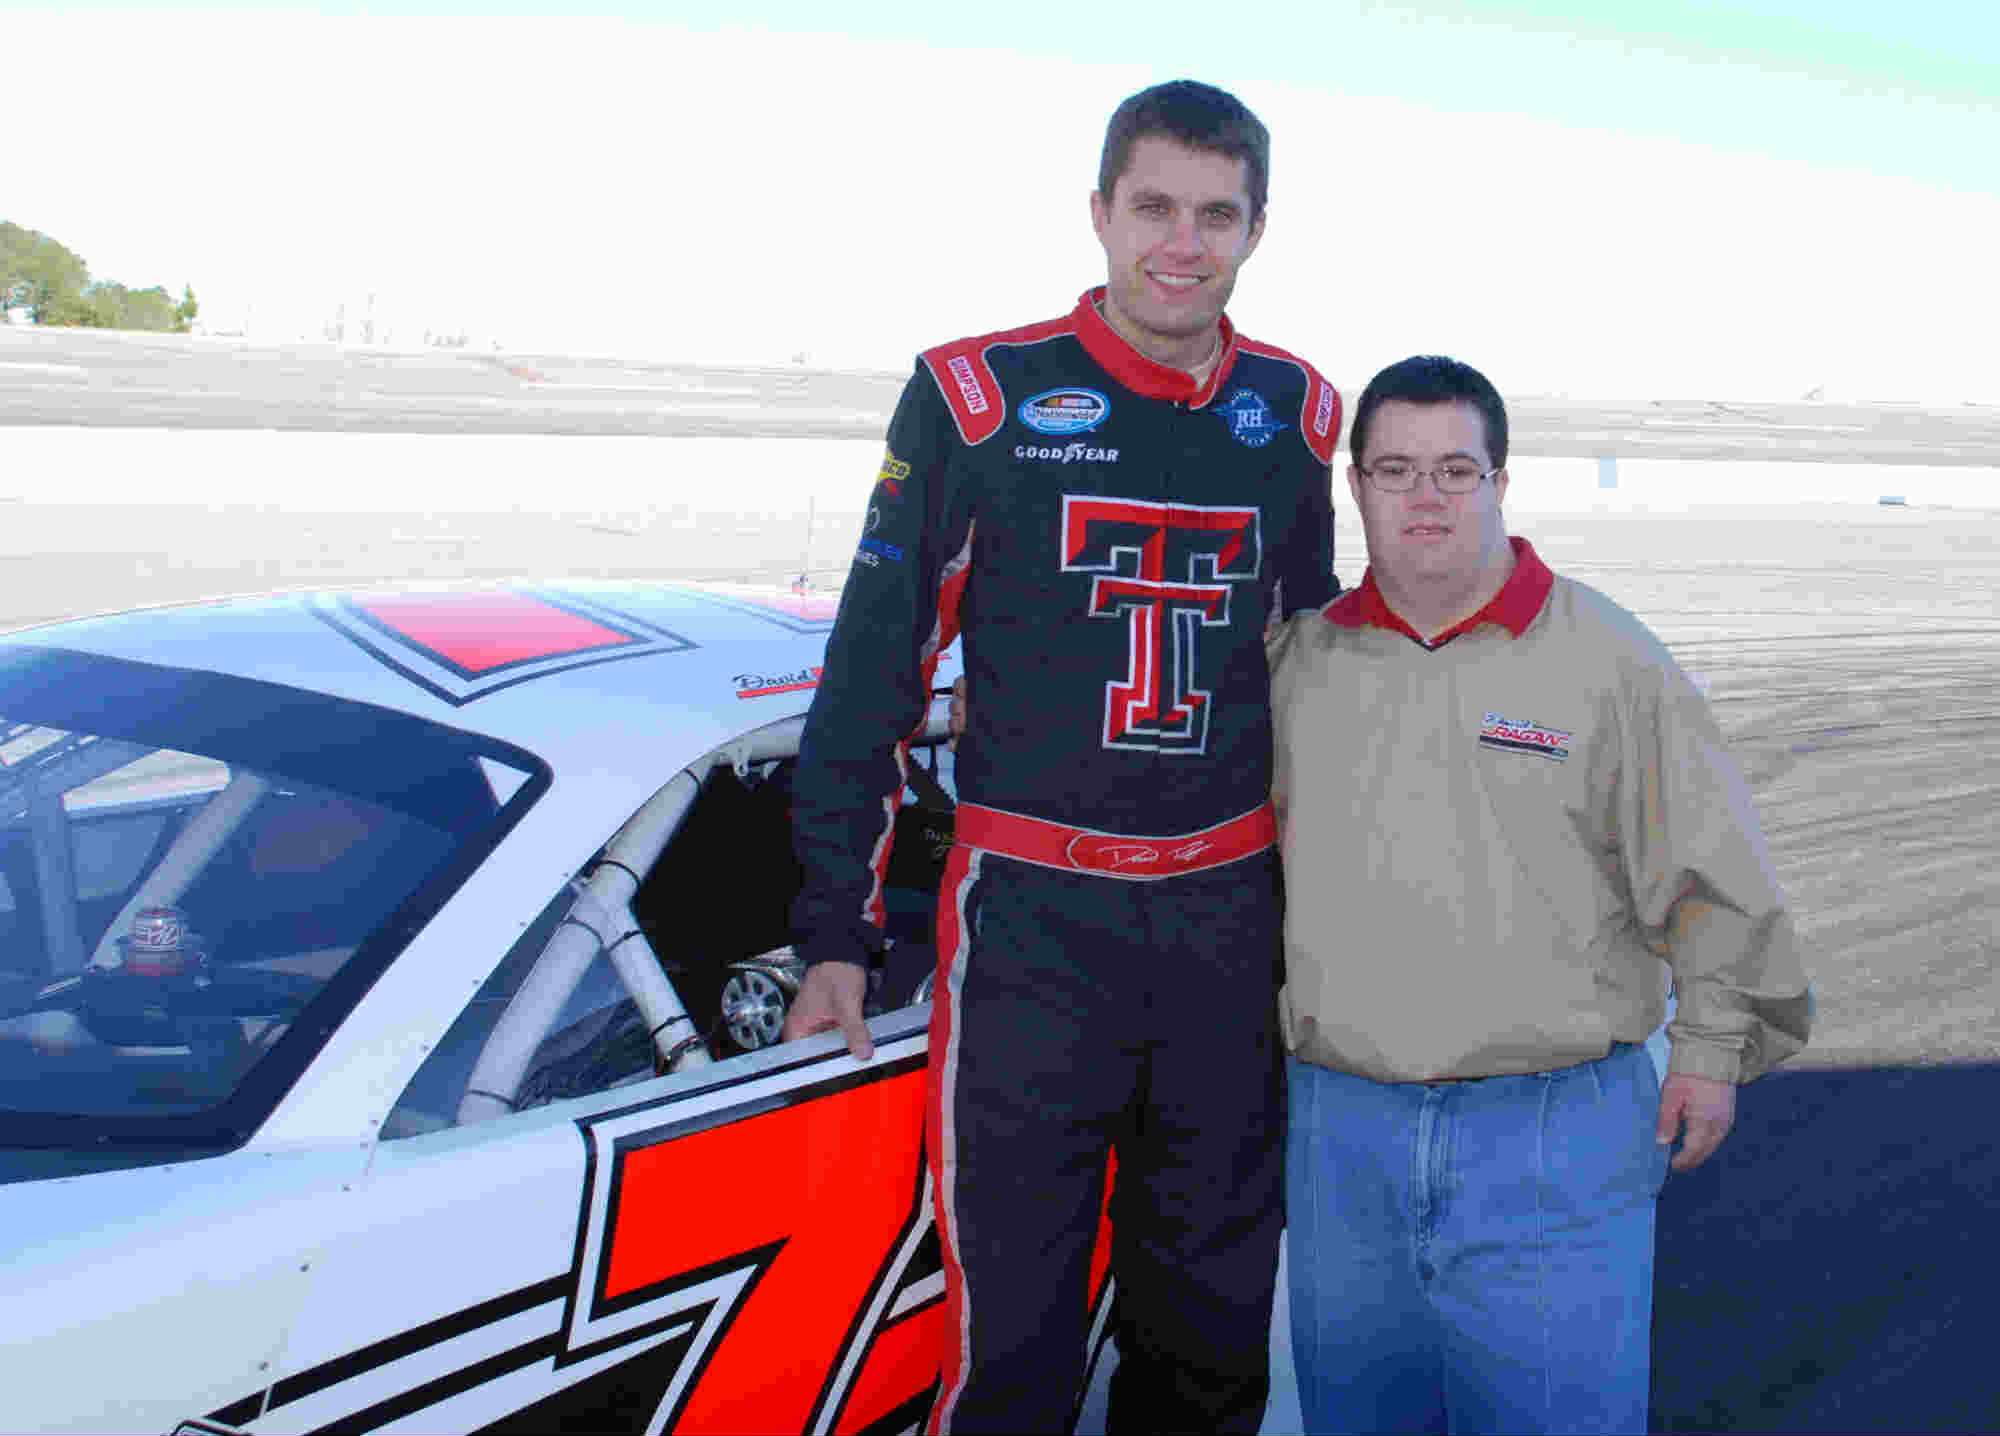 NASCAR Driver David Ragan with his brother Adam (courtesy of the Ragan family)